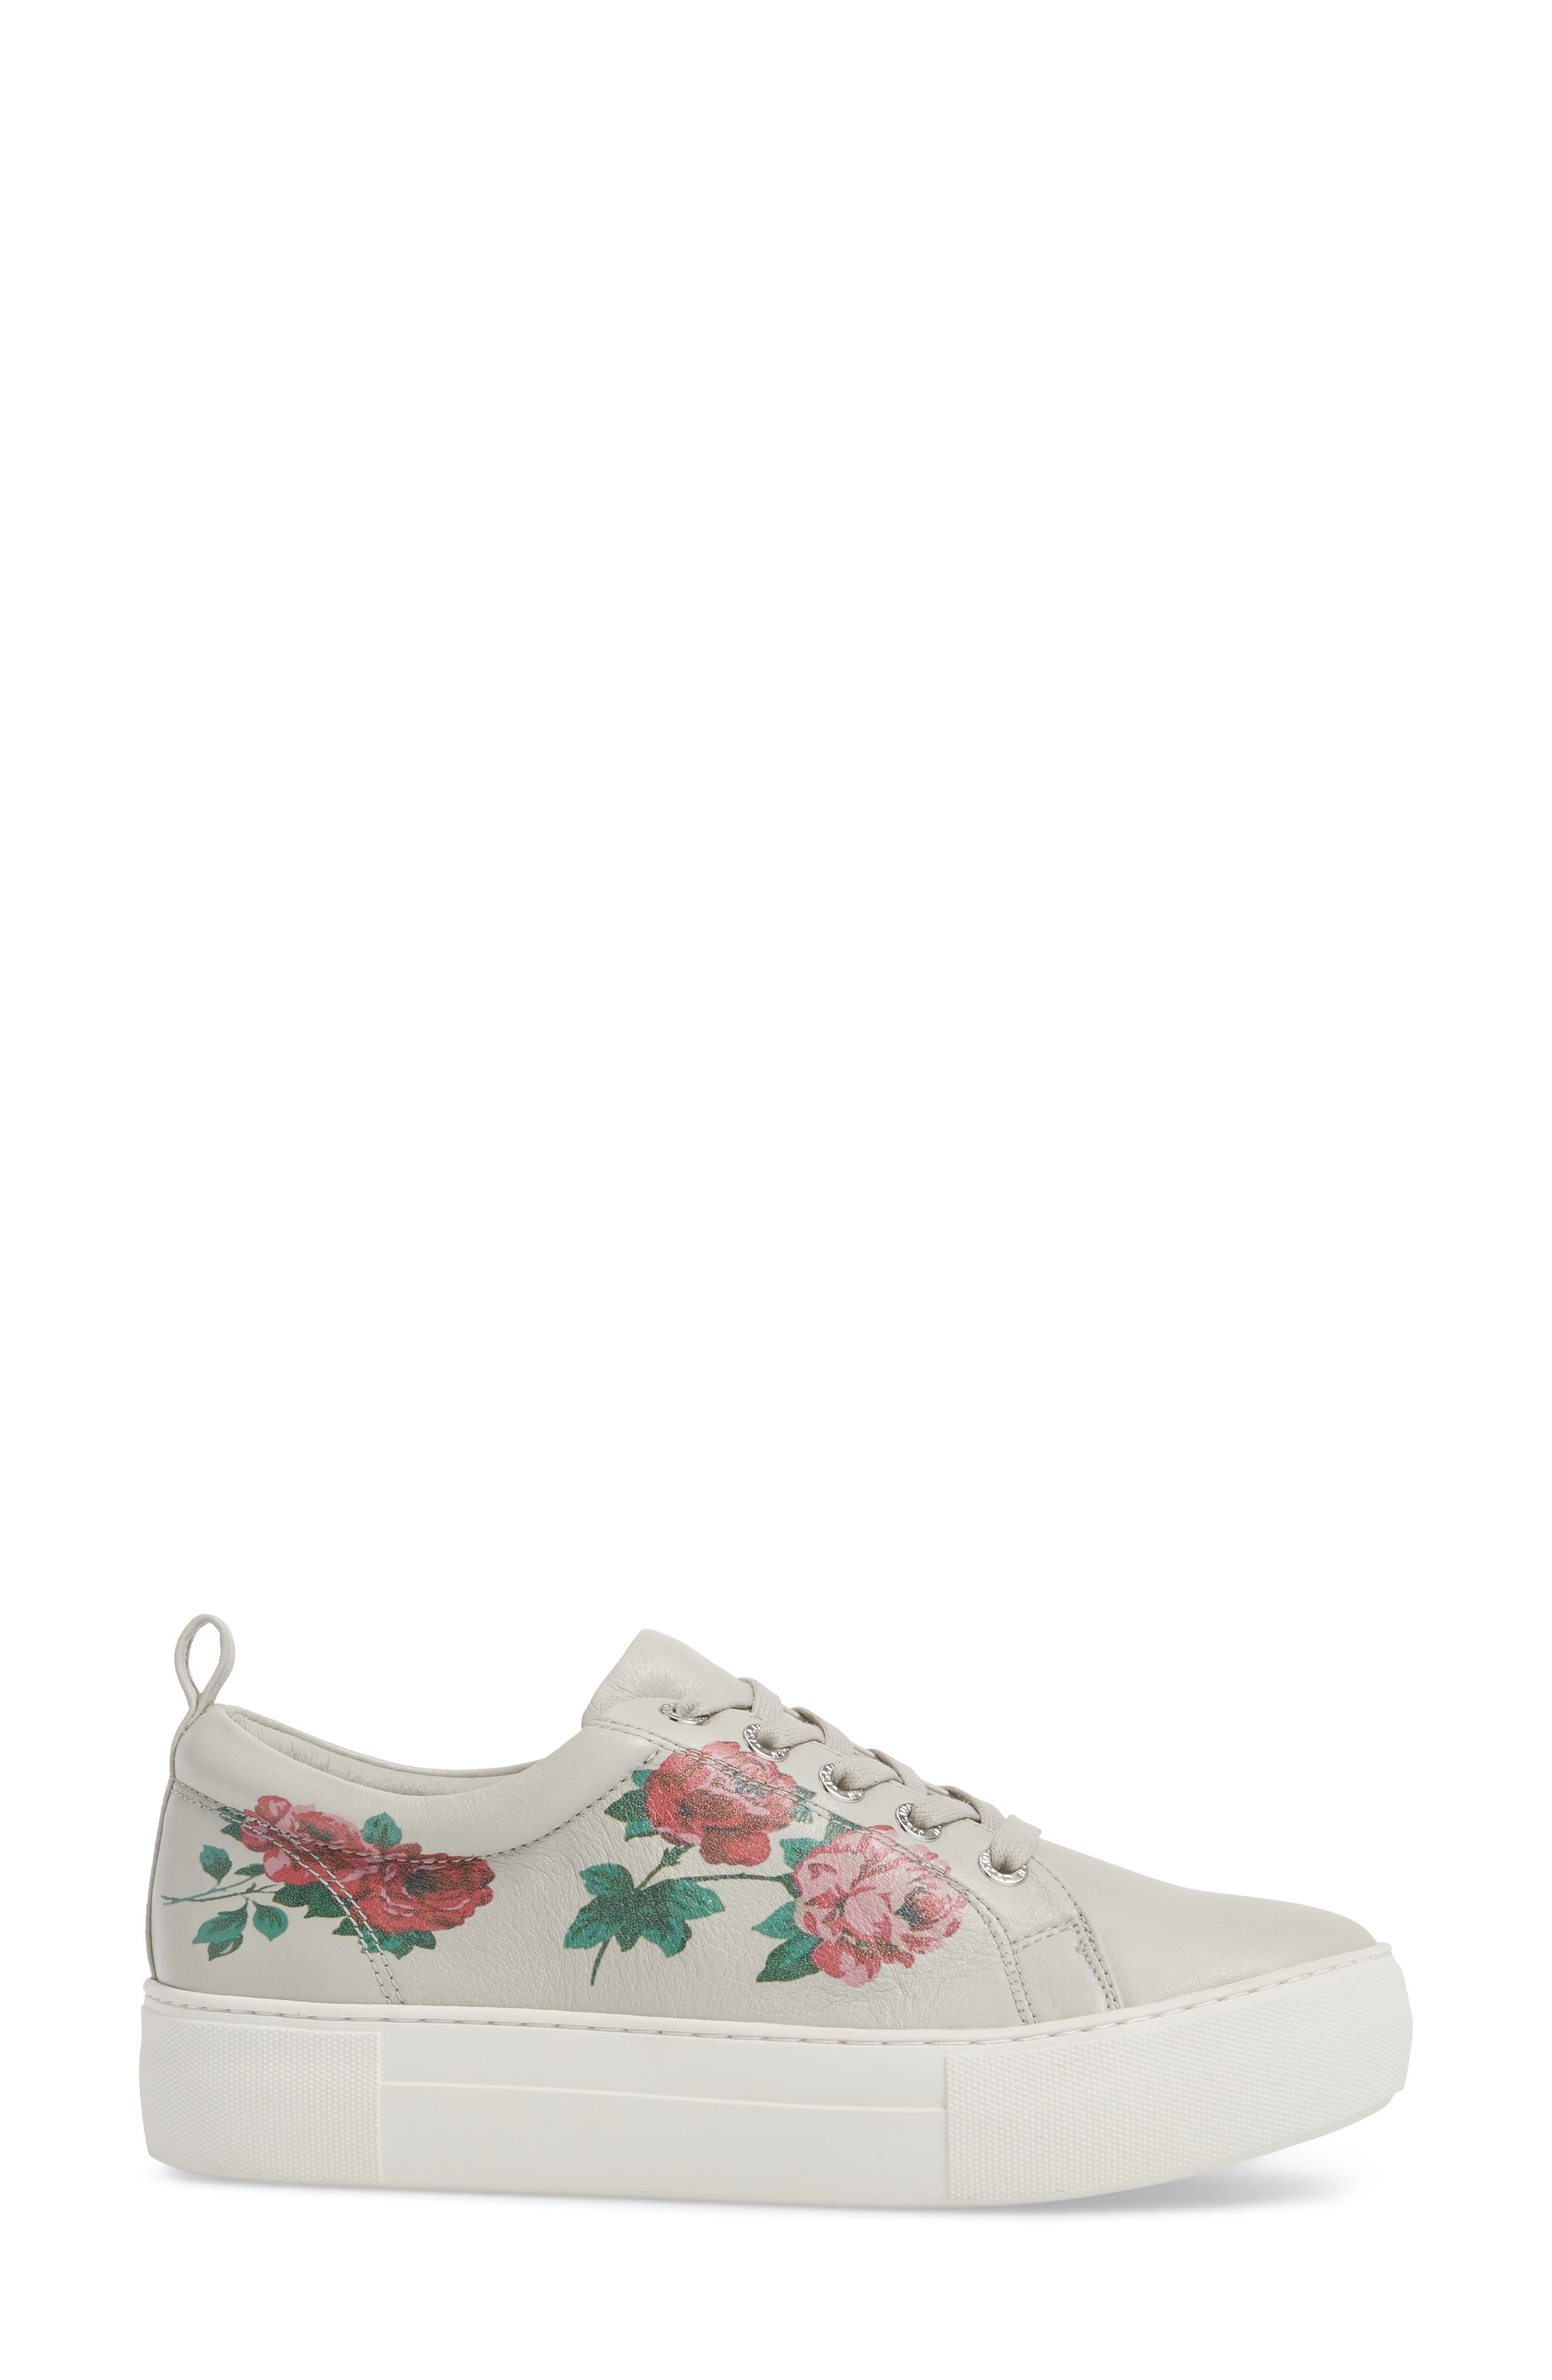 Adel Floral Sneaker,                             Alternate thumbnail 7, color,